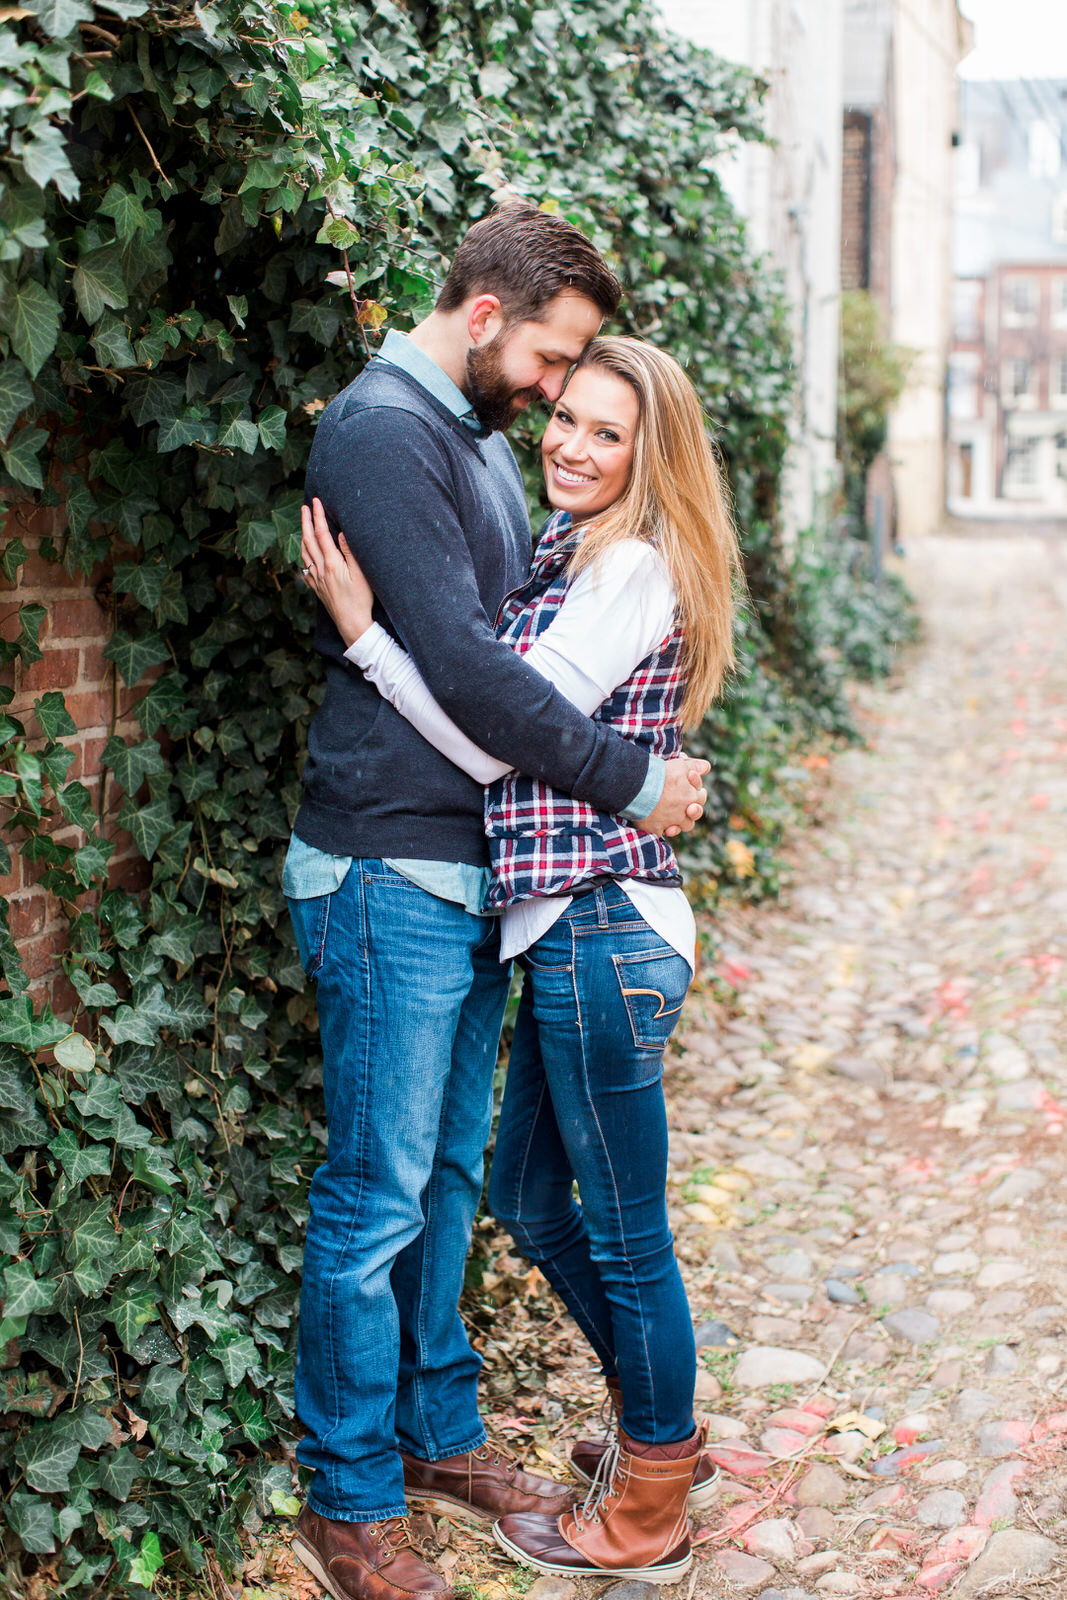 old_town_alexandria_engagements-30.jpg